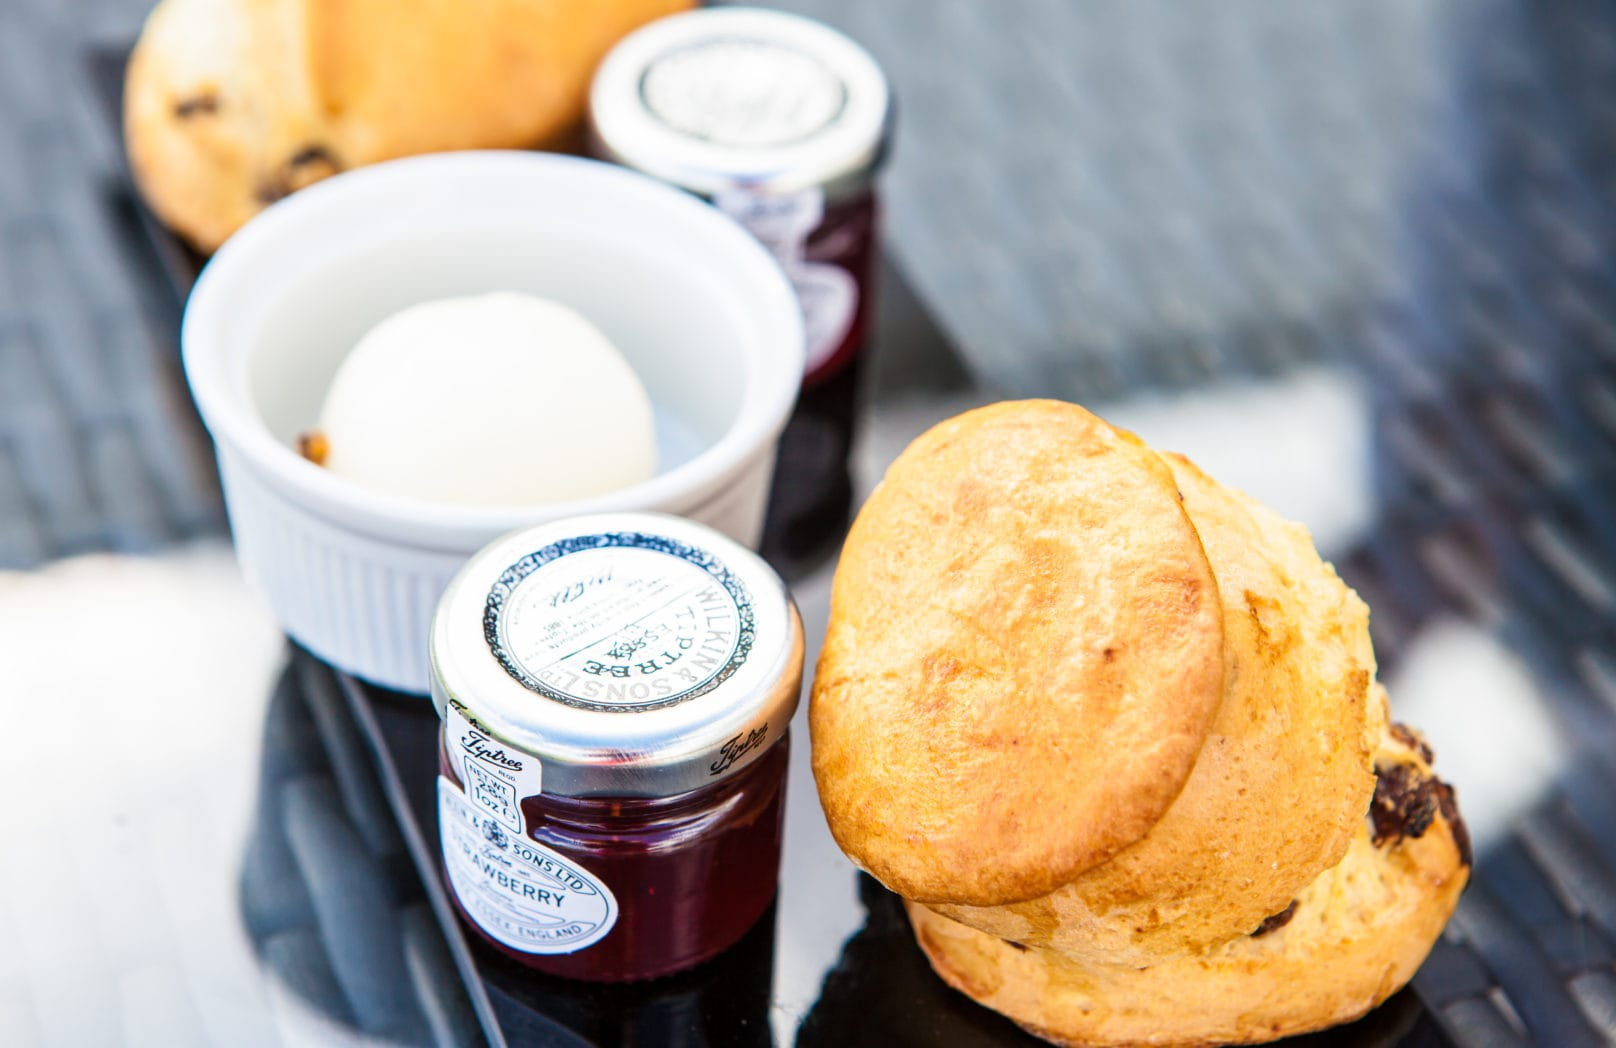 Afternoon Tea Scones and Jam